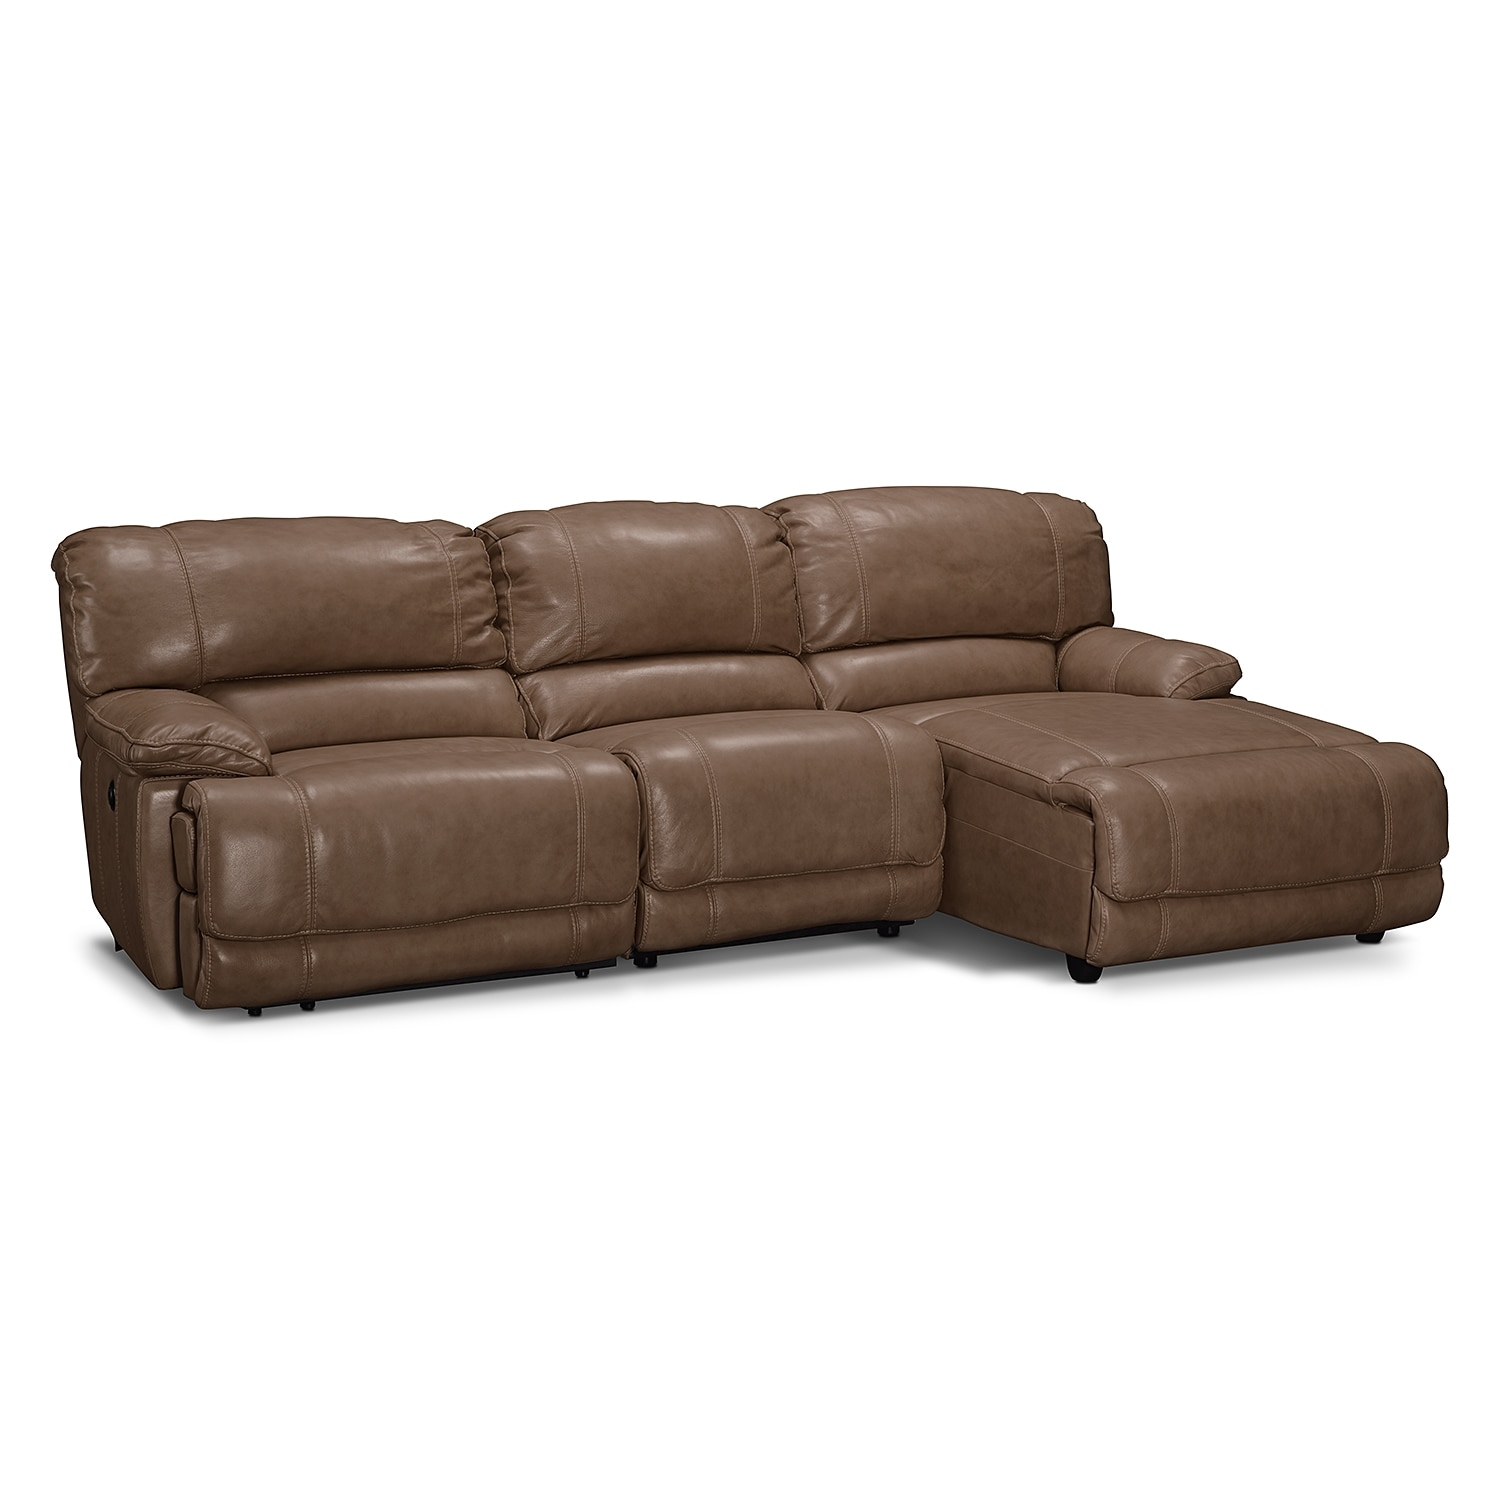 St malo 3 piece power reclining sectional with right for Brighton taupe 3 piece chaise and sofa set